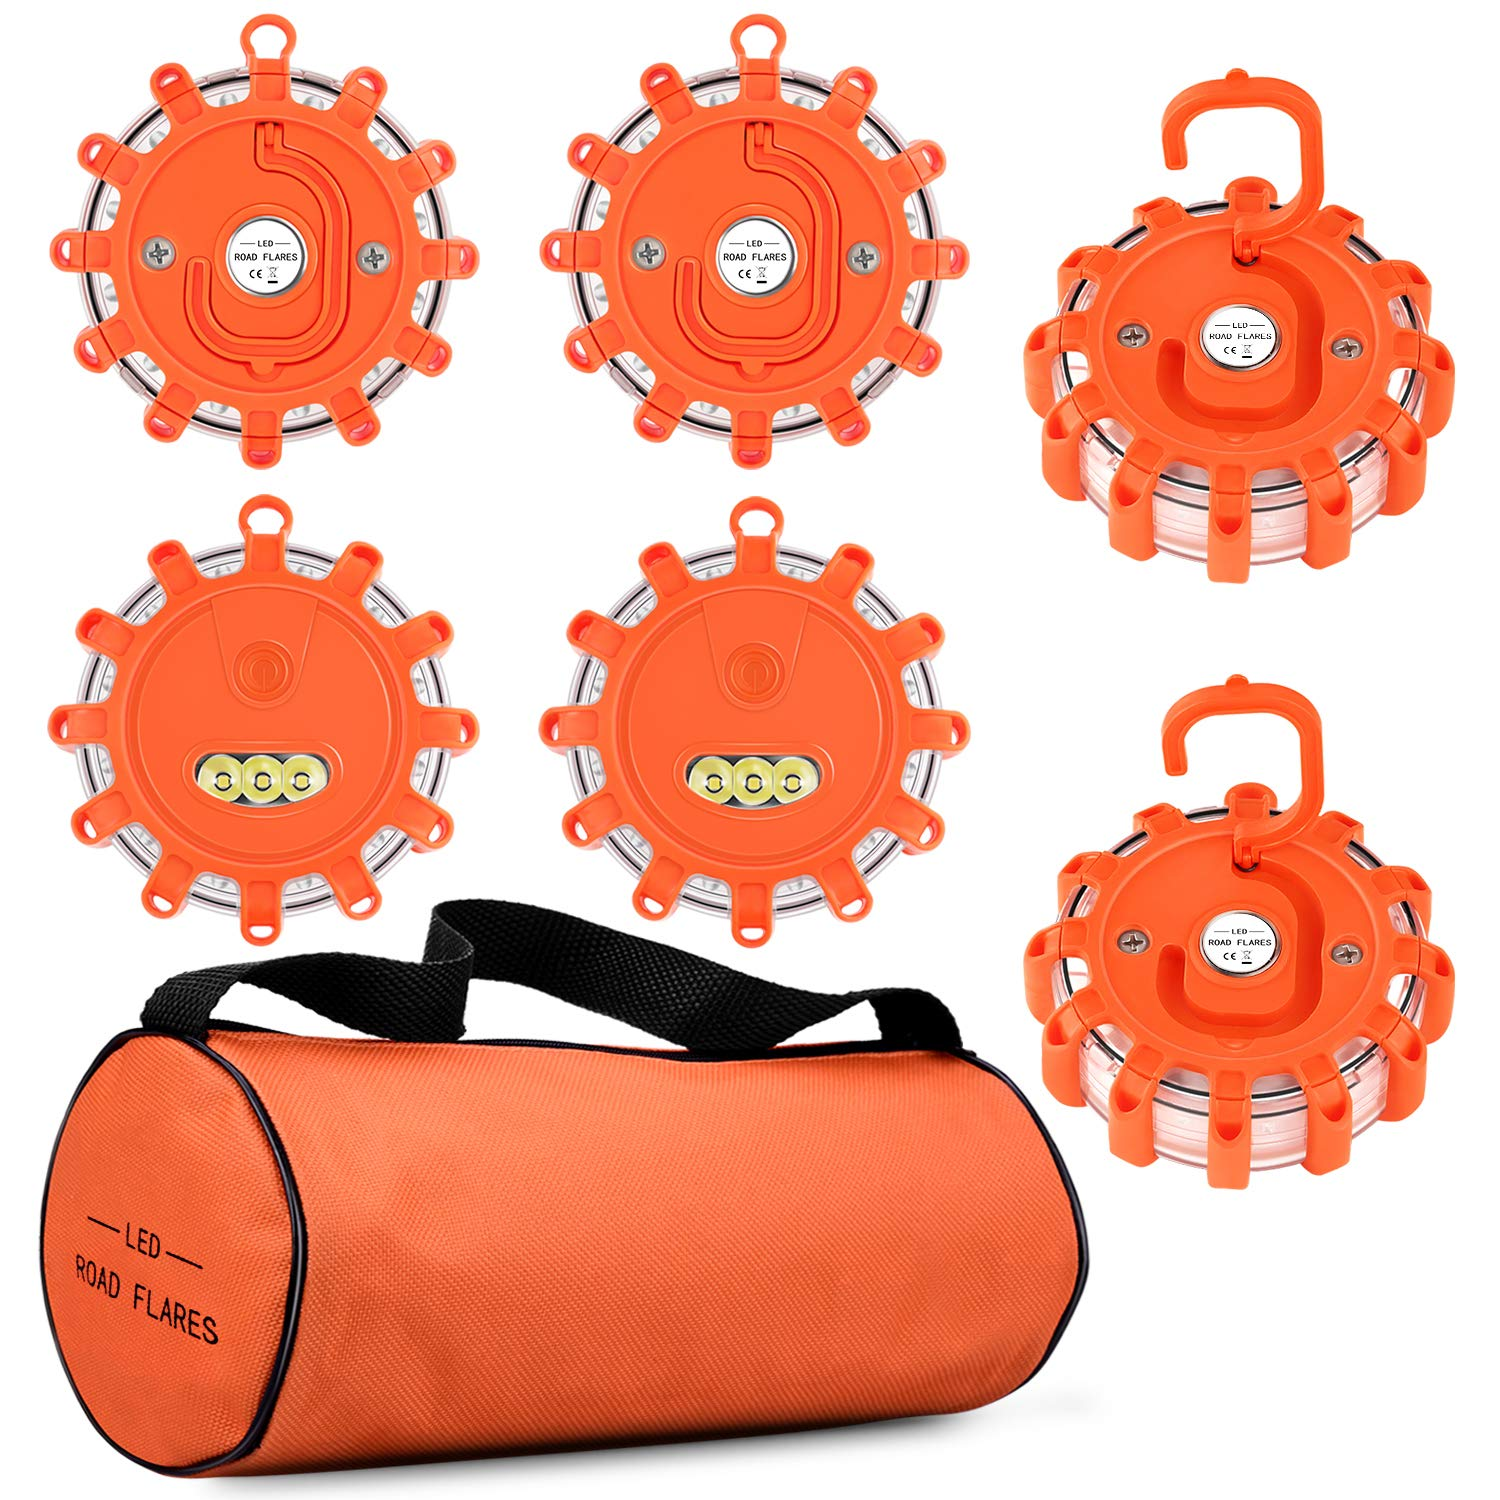 Vancle LED Road Flares 6 PACK Emergency Disc with Magnetic Base and Hook Roadside Safety Flashing Warning Strobe Light for Car Truck Boat, Orange Red